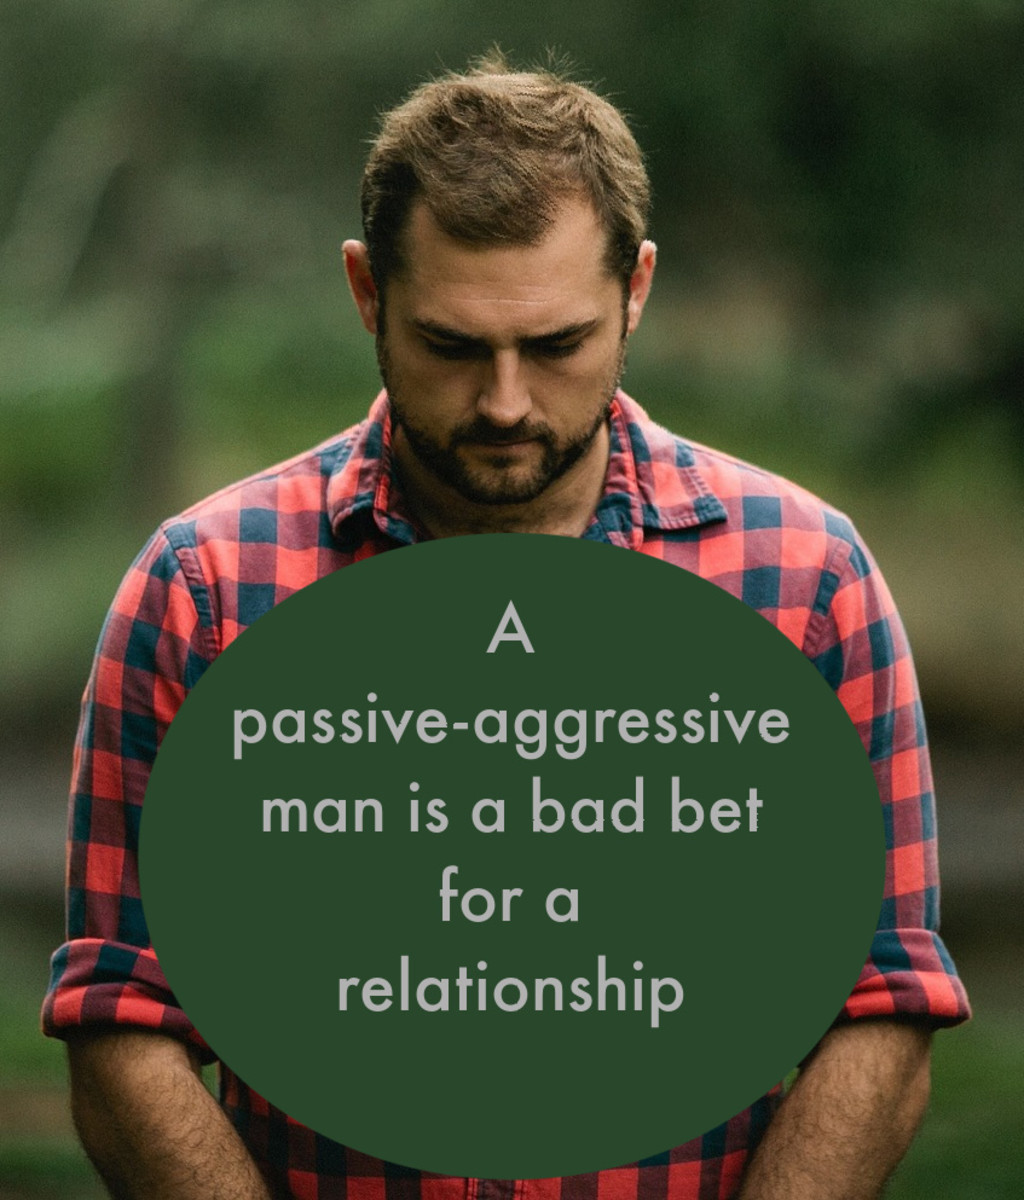 Passive-aggressive behaviors can start in childhood and are unlikely to change.